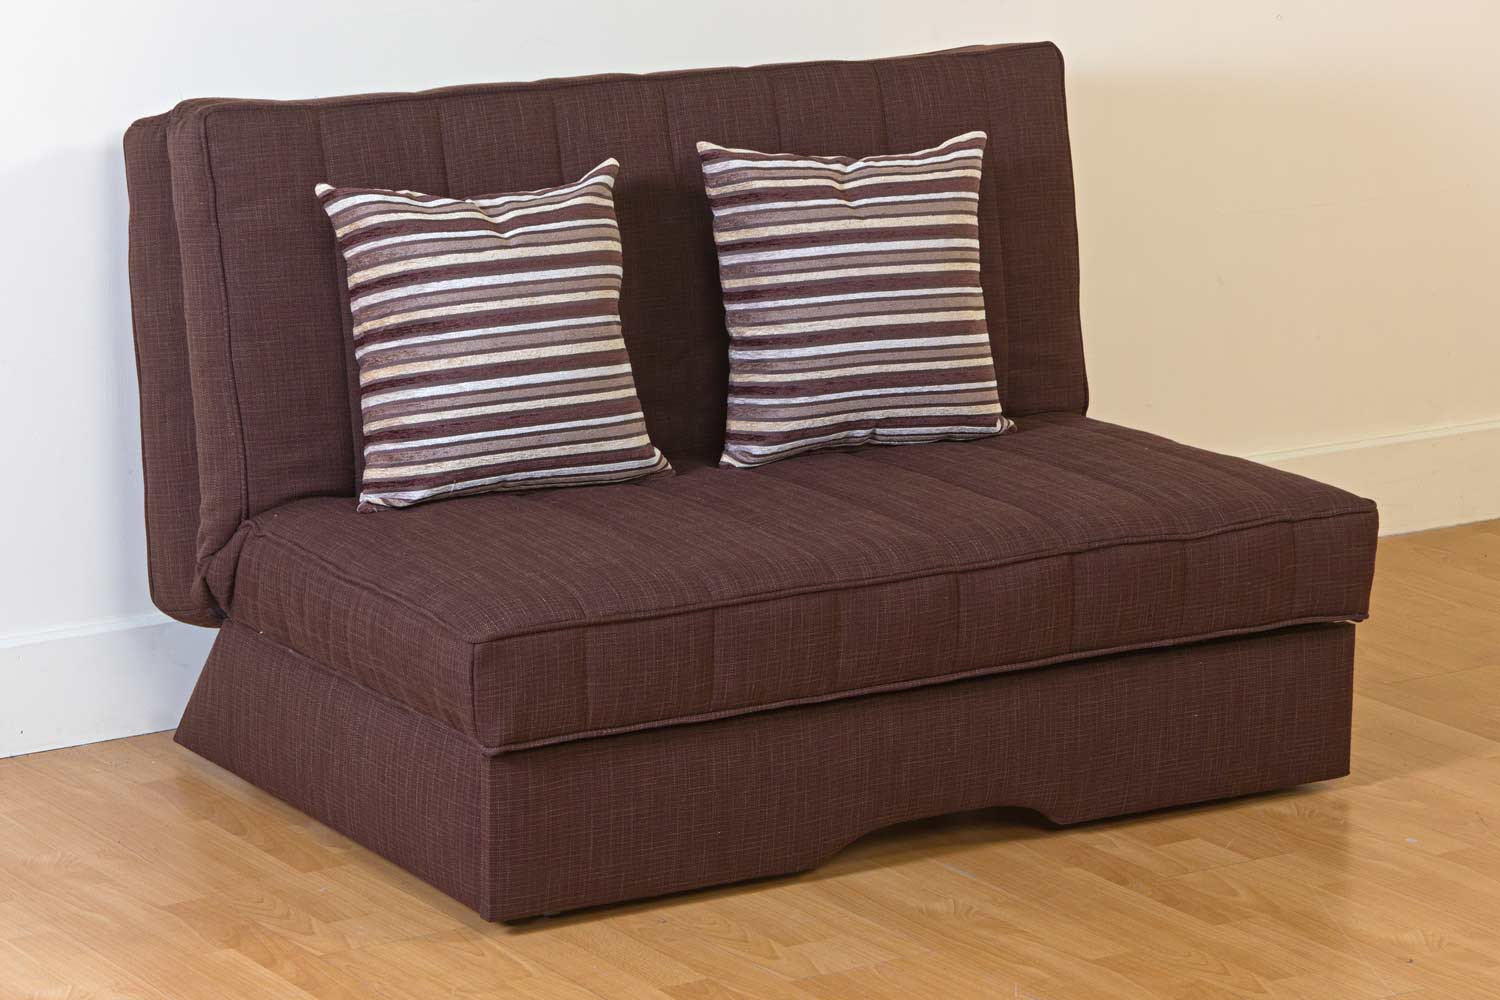 comfortable dark brown cheap futons with stripped cushions for home furniture ideas